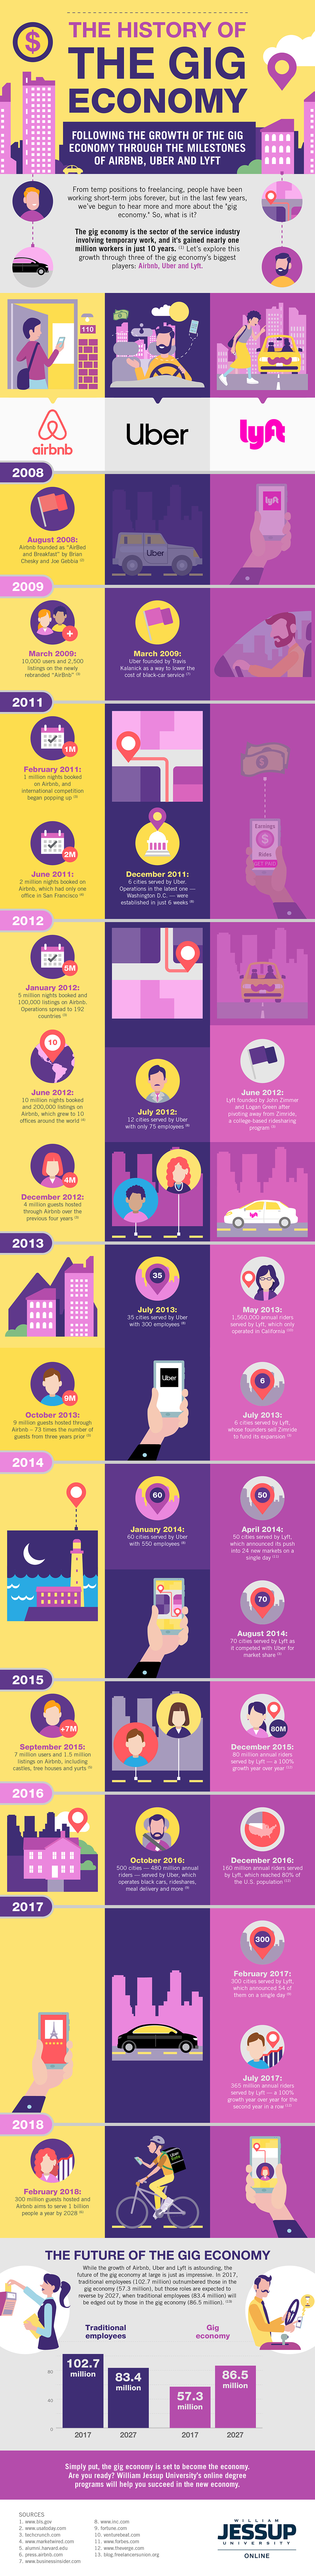 The Gig Economy: Past, Present, and Future - Infographic